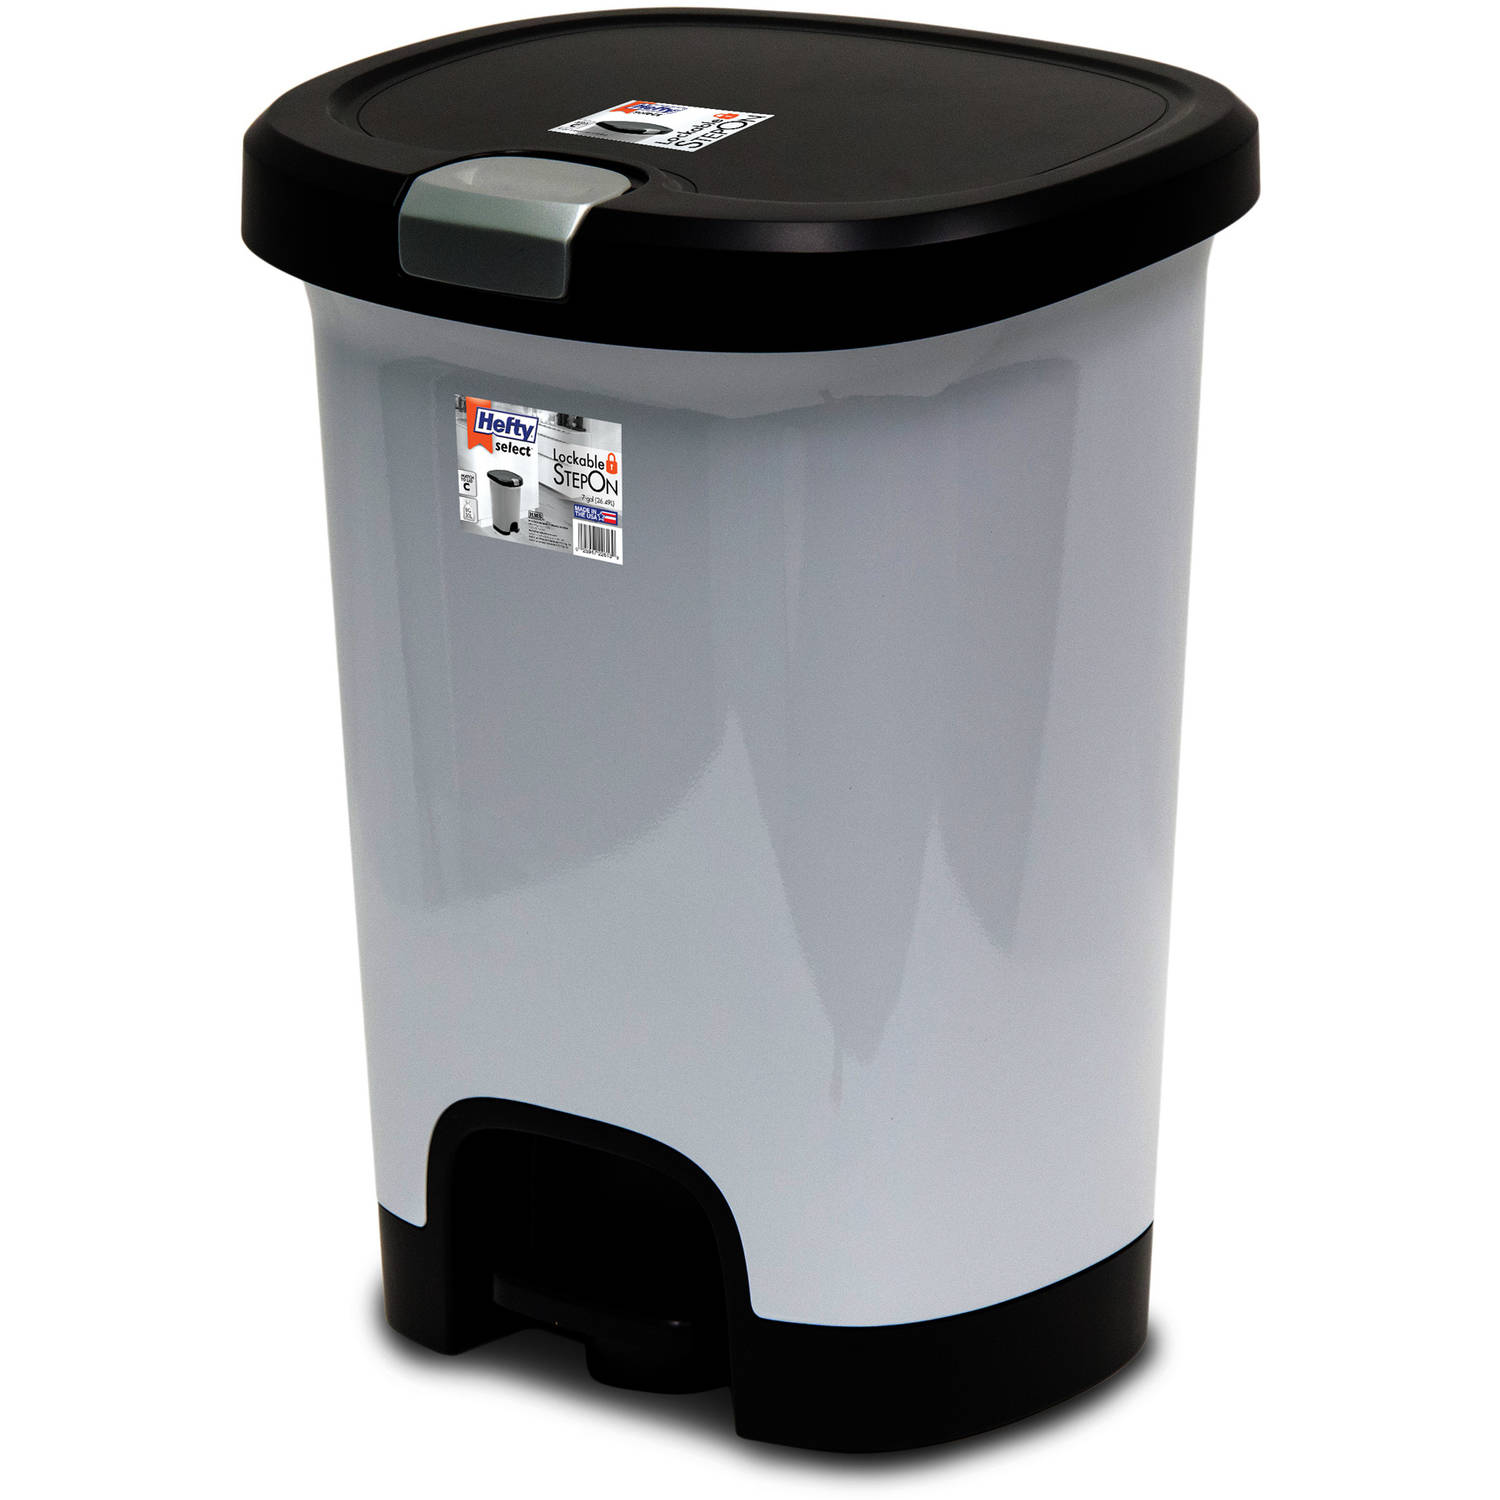 Hefty 7 Gal Textured Step On Trash Can With Lid Lock And Bottom